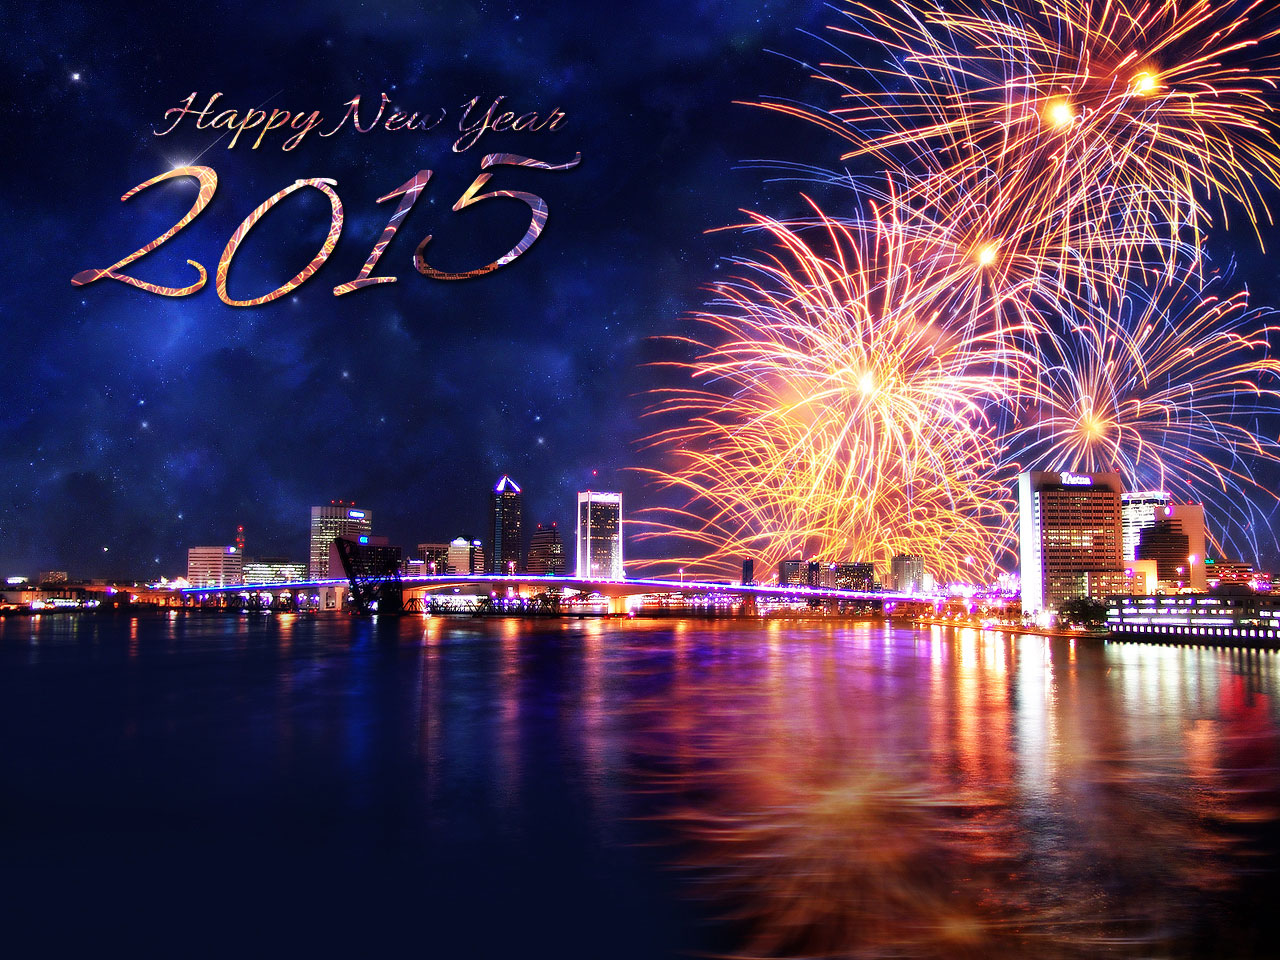 Happy New Year 2015 Wallpapers Images Facebook Cover photos 1280x960